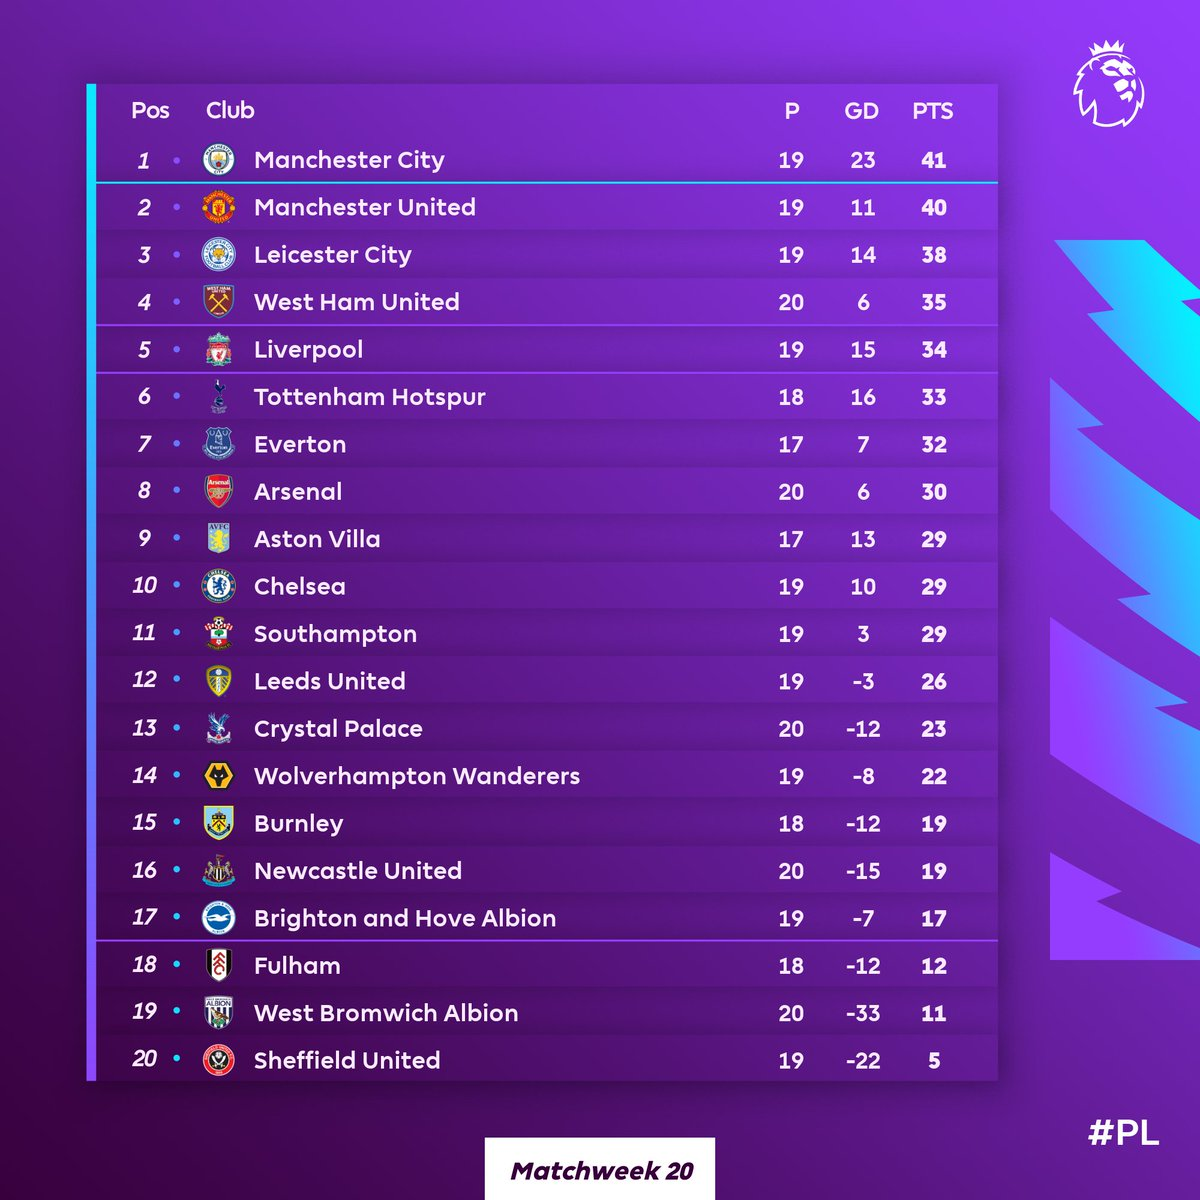 Don't look now but @ManCityUS are at the top 👀